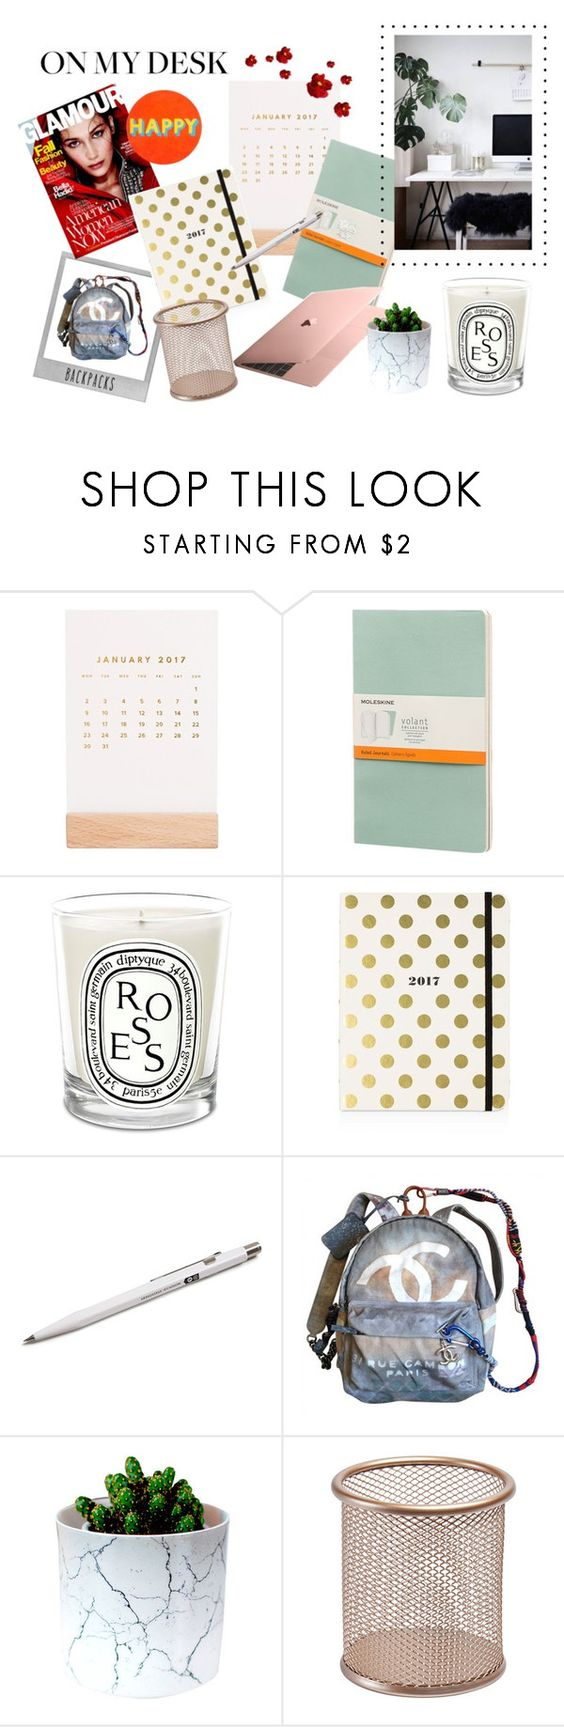 What's on my desk this year ? by anais-wardrobe on Polyvore featuring interior, interiors, interior design, maison, home decor, interior decorating, Lisa Perry, Kate Spade, Thrive and Moleskine